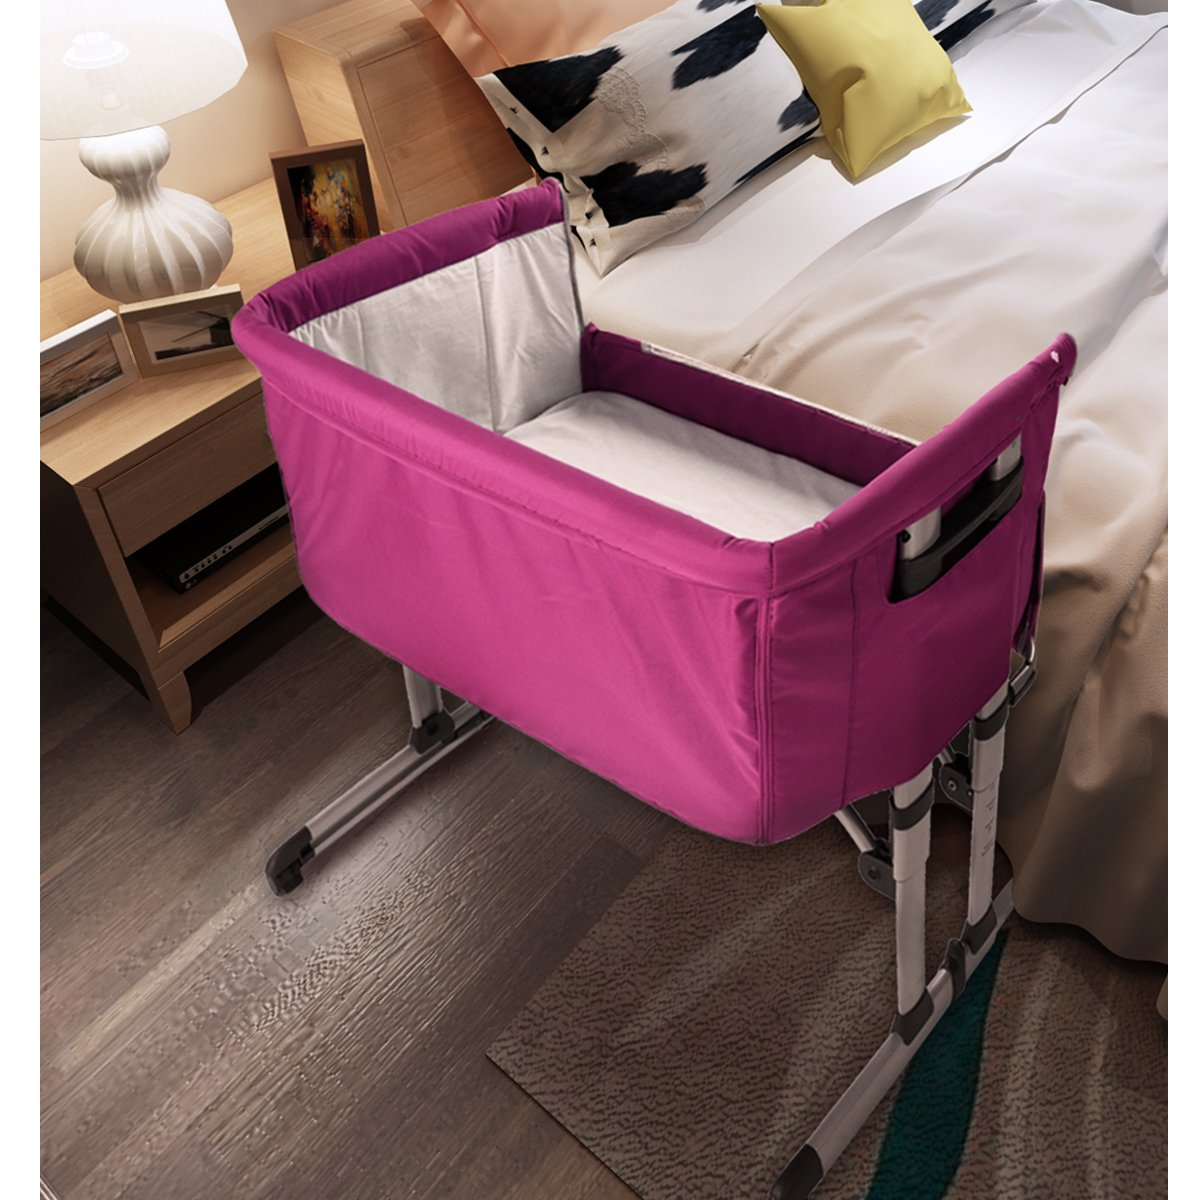 PANANASTORE Adjustable Baby Bed Side Sleeping/Crib Fixed /& Swing Function/with Mosquito/Net /&/Carry/Bag Pink